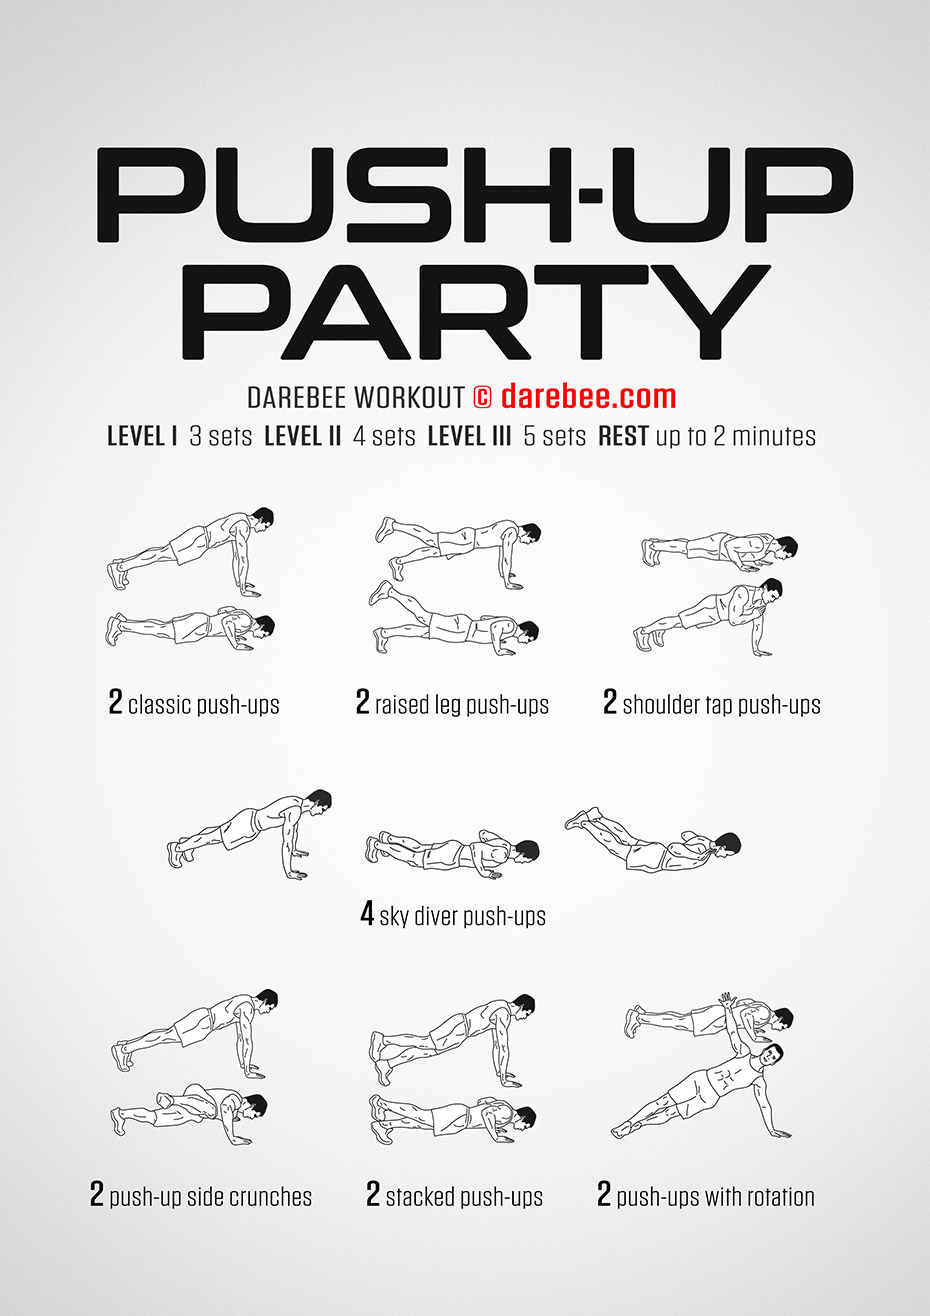 pushup-party-workout